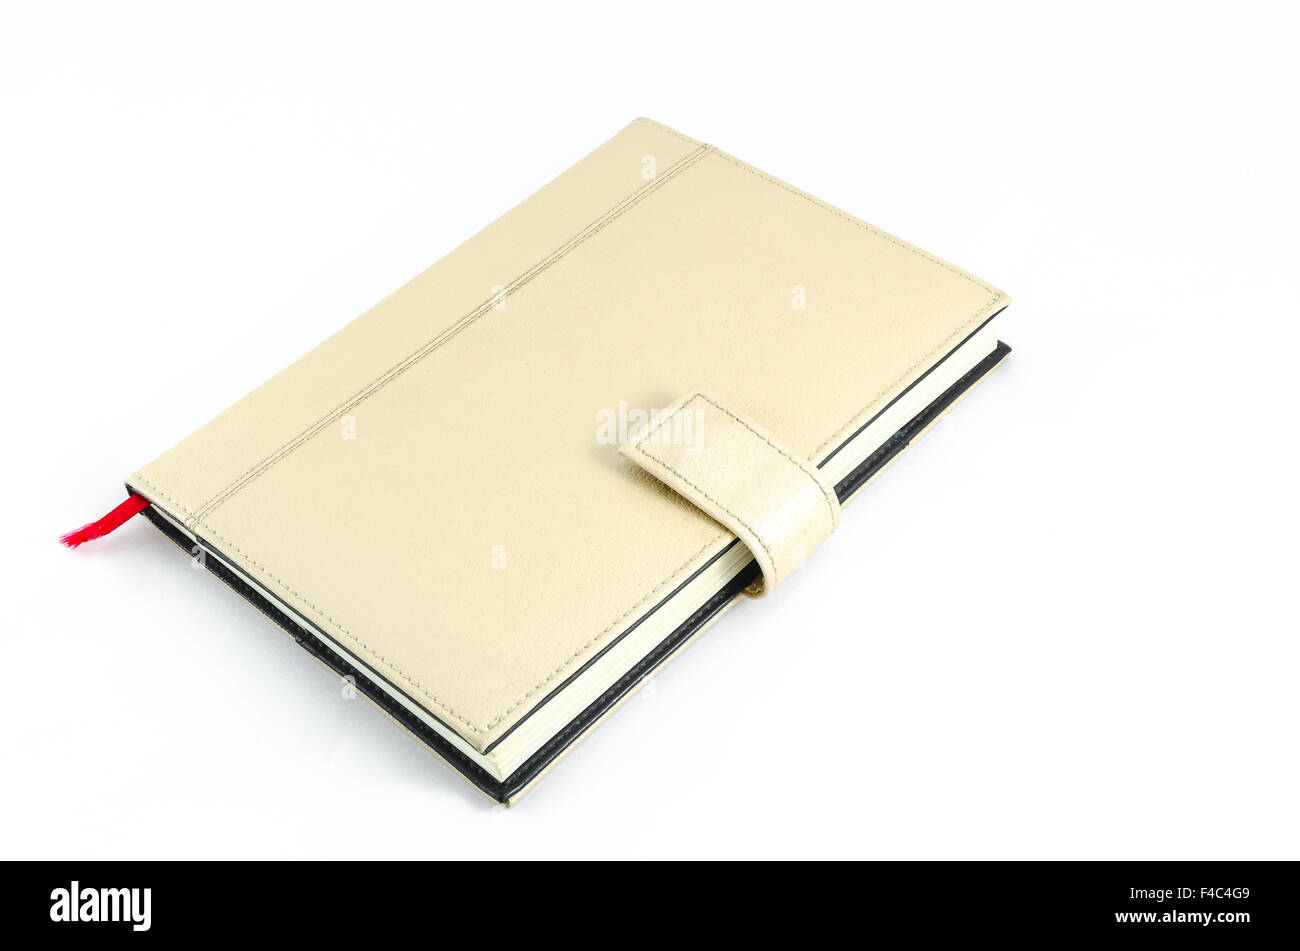 Brown diary on isolate background - Stock Image